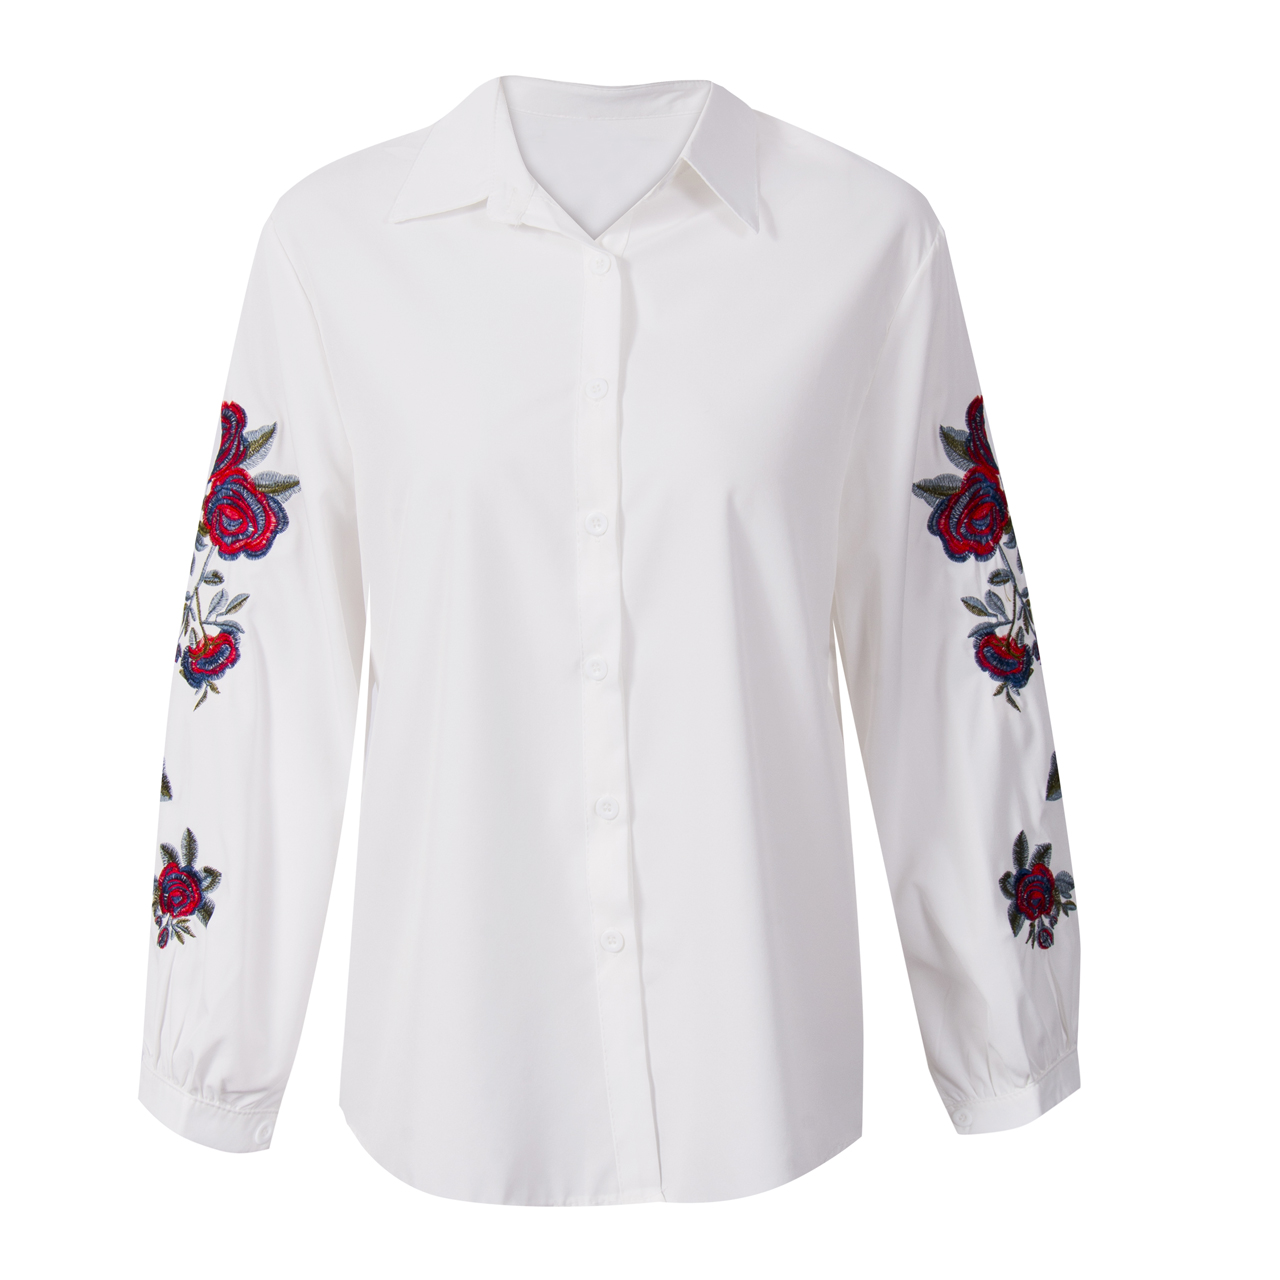 9ffa3f5b99d5a Floral And Striped Shirt Plus Size